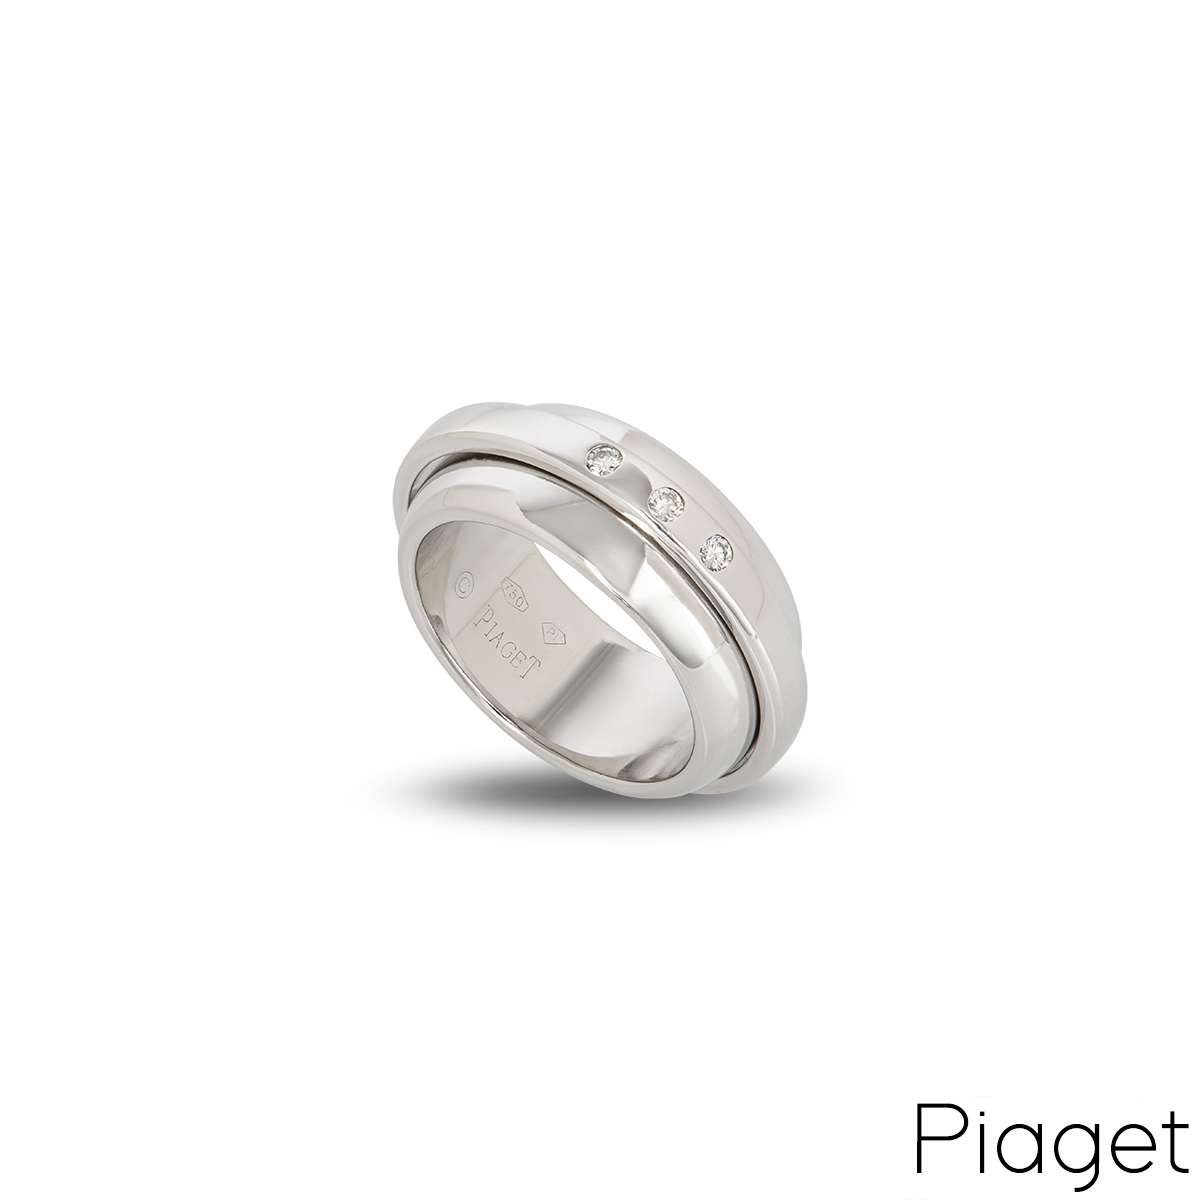 Piaget 18k White Gold Possession Ring B&P G34PM653